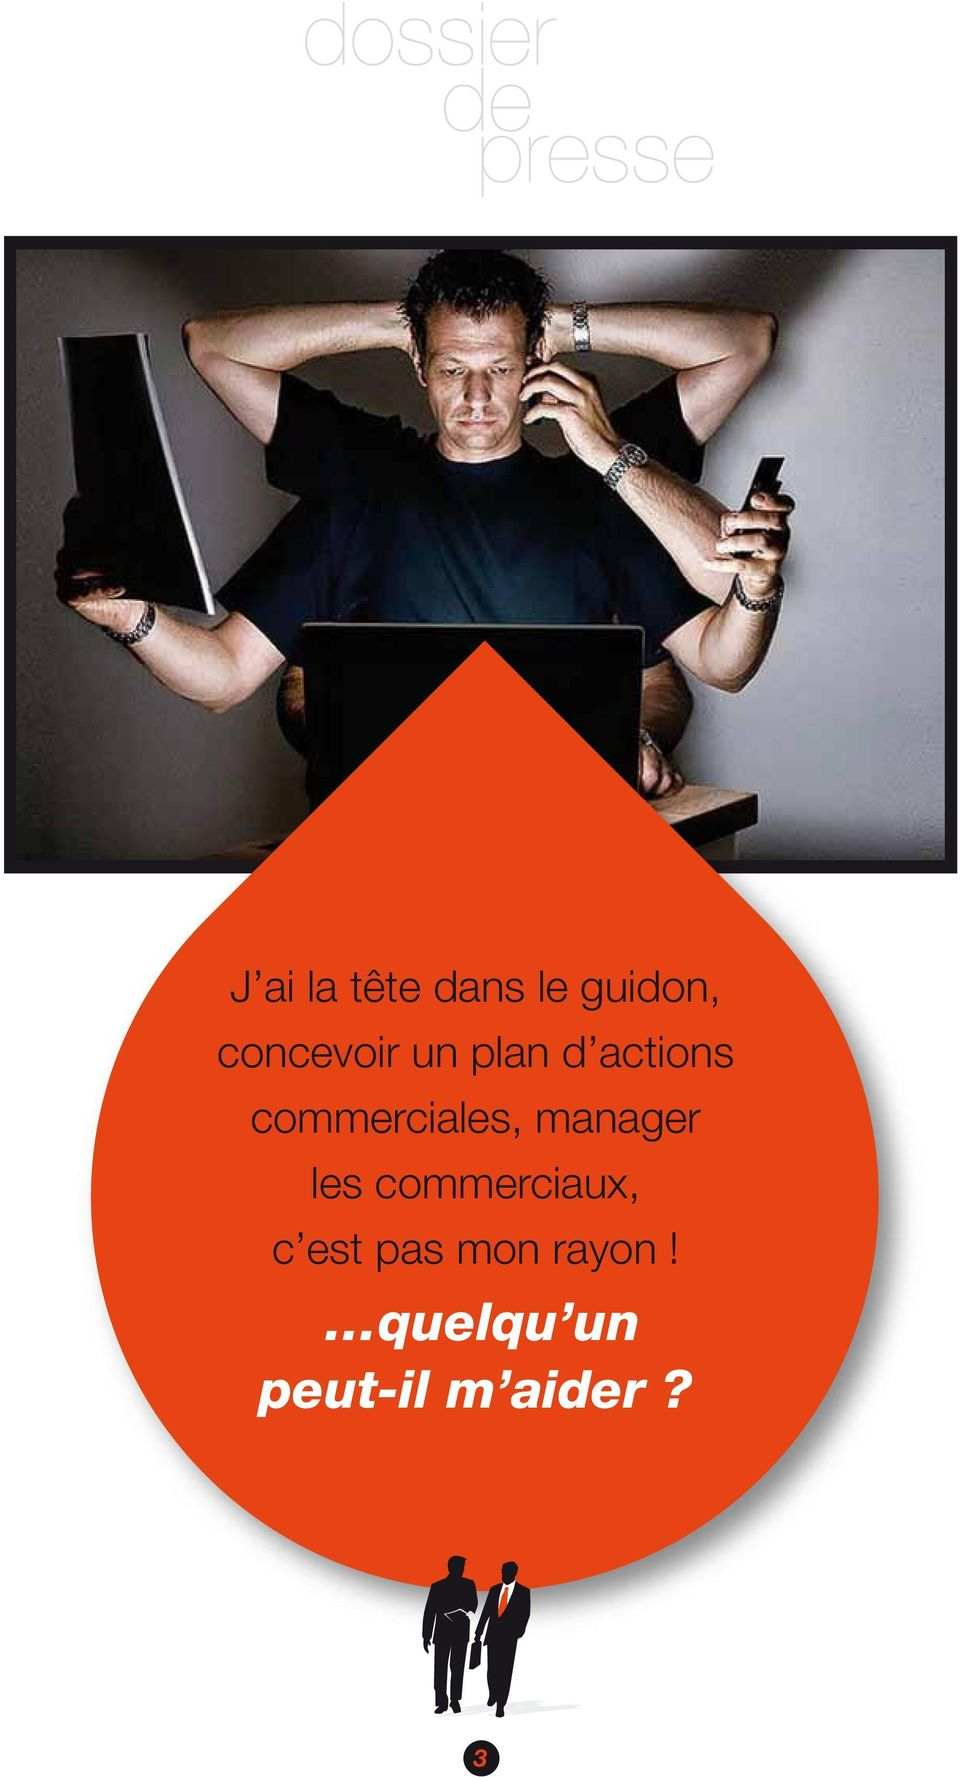 commerciales, manager les